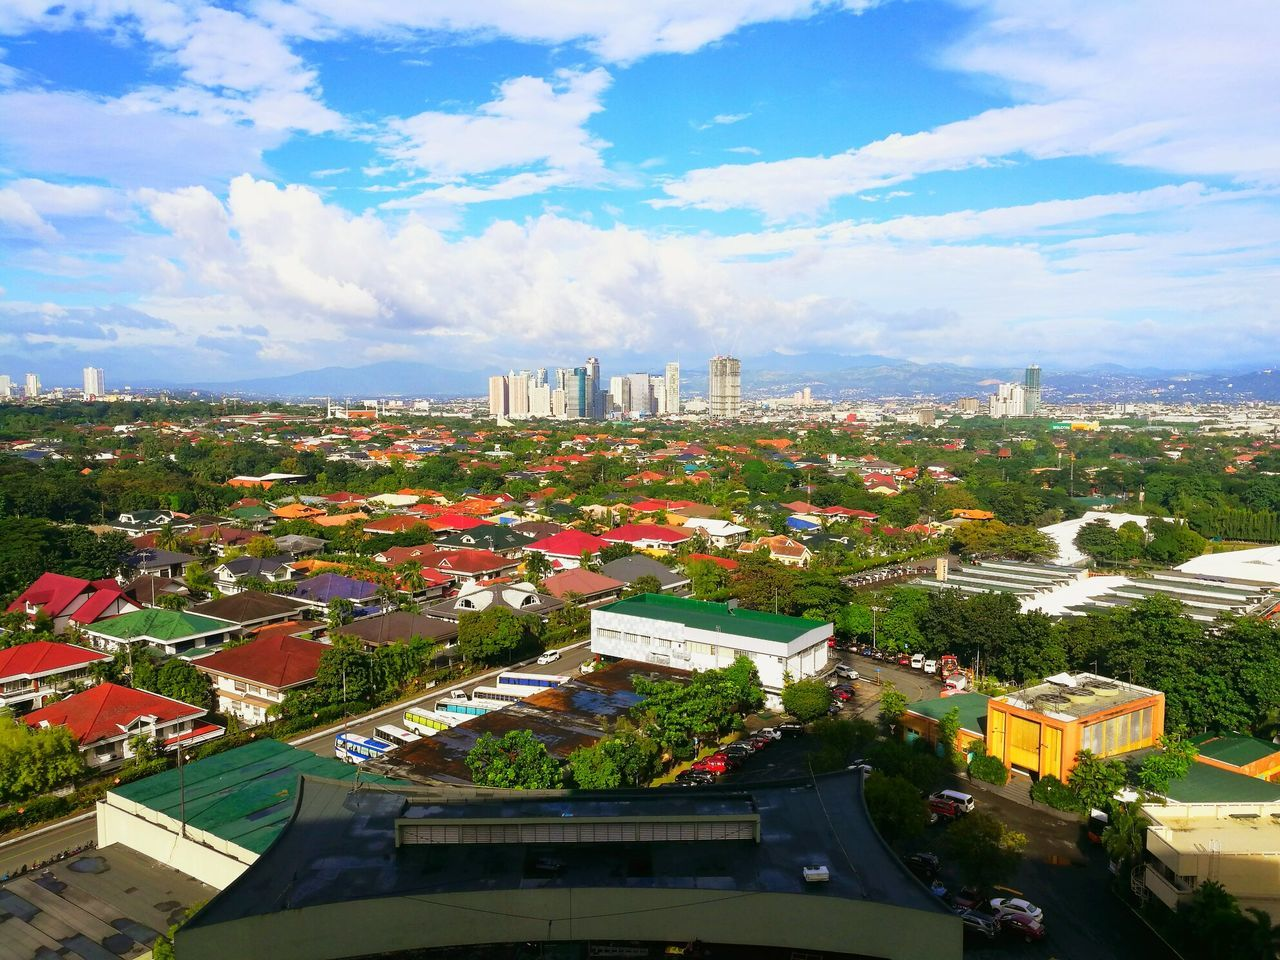 The Pasig City skyline 😃 Cityscape City High Angle View Travel Destinations Architecture Aerial View Urban Skyline Travel Tourism Sky Arrival Outdoors Business Finance And Industry Building Exterior Illuminated Cloud - Sky Skyscraper Tree No People Night First Eyeem Photo